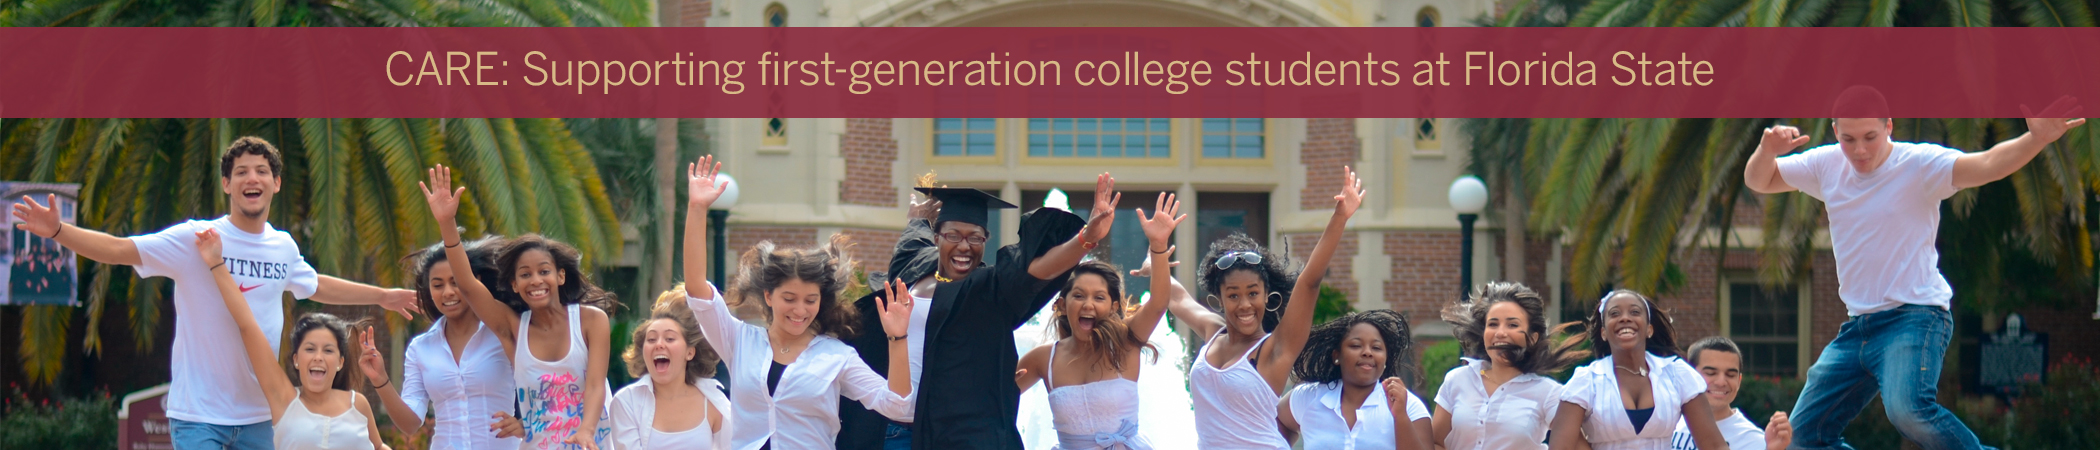 Learn more about supporting first generation college students at Florida State